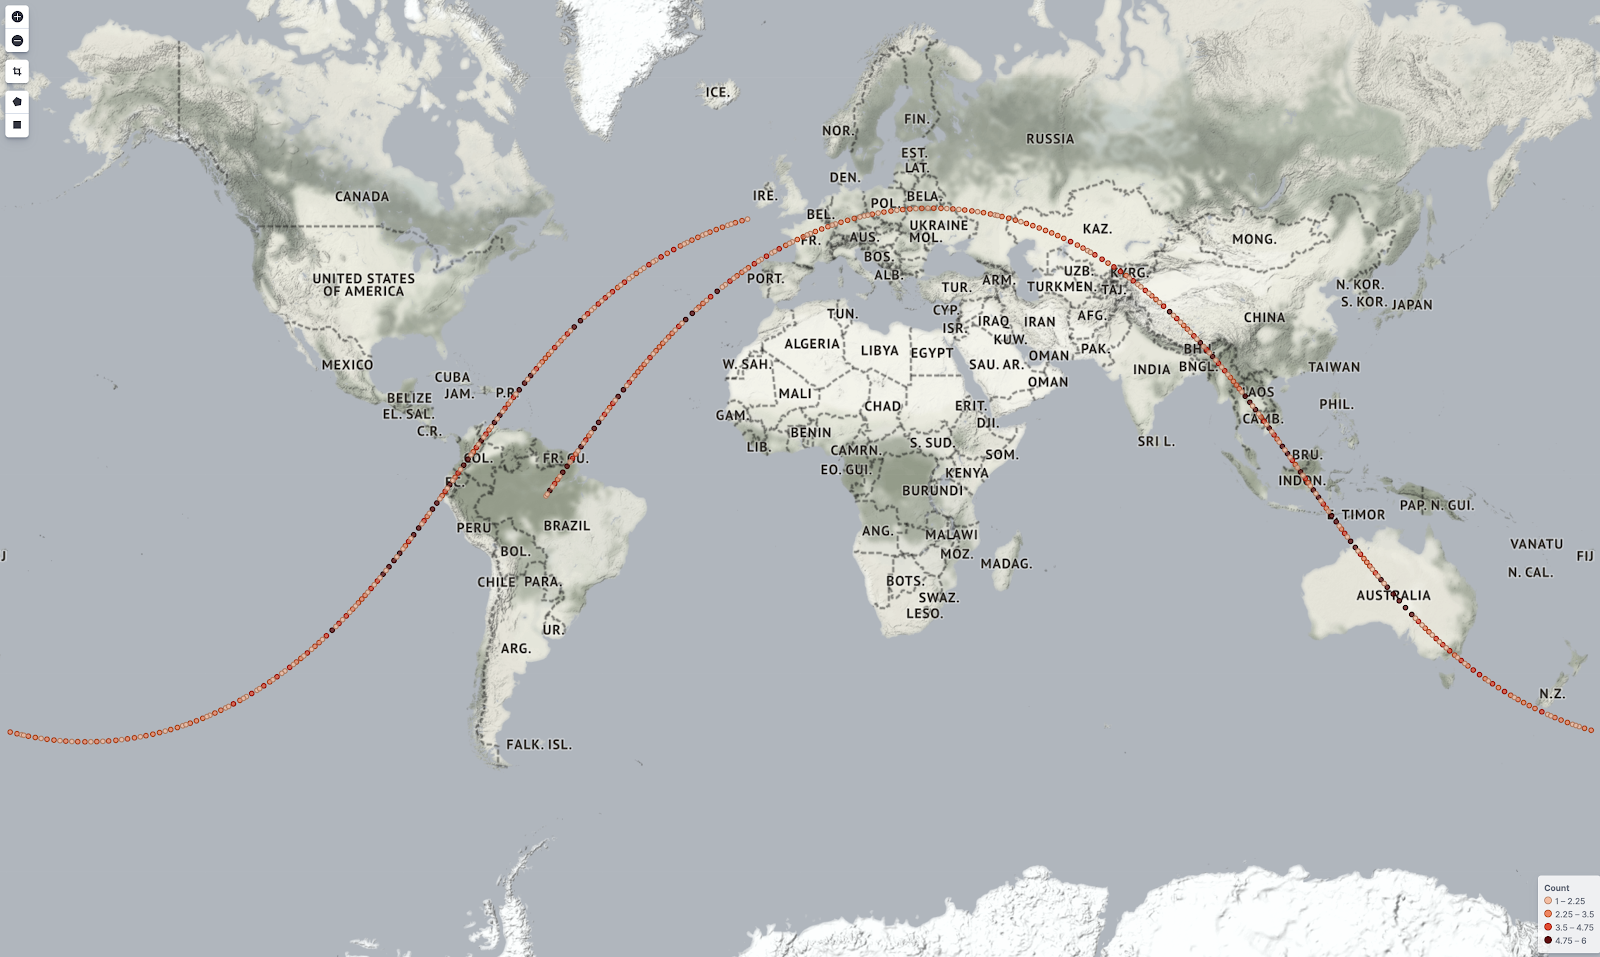 The path of the International Space Station - captured in real time using Filebeats and the Elasticsearch pipeline.